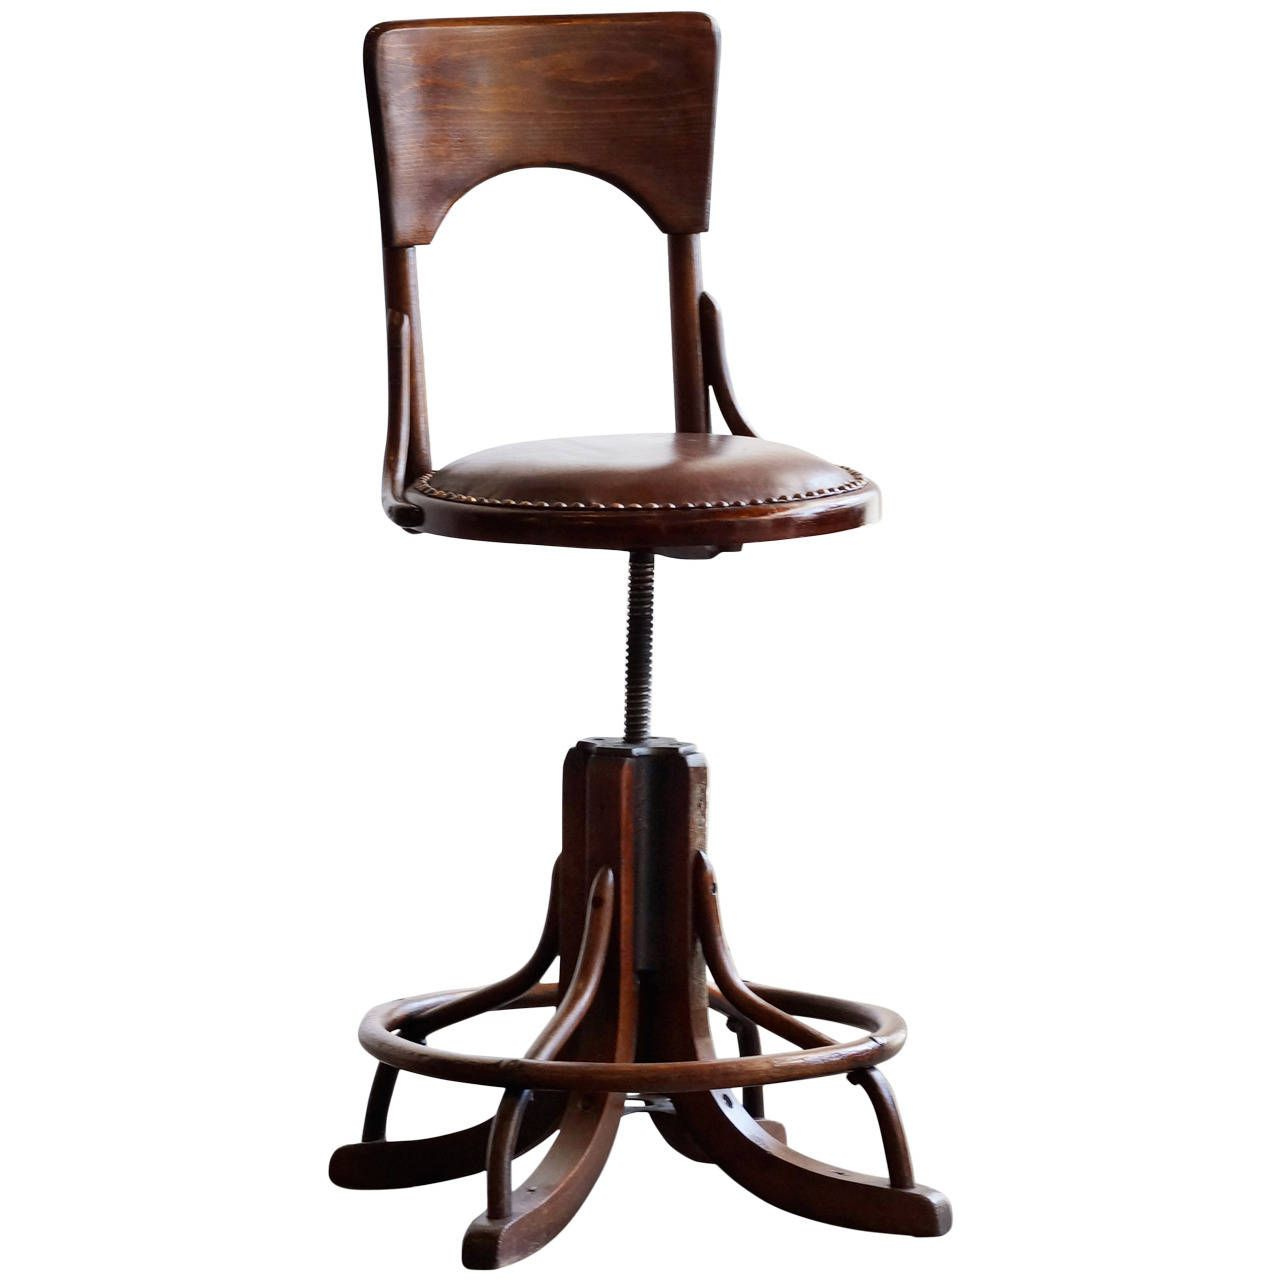 office drafting chair. Antique Oak And Cast Iron Drafting Stool With Back, C. Late 1800s. Office Chair E